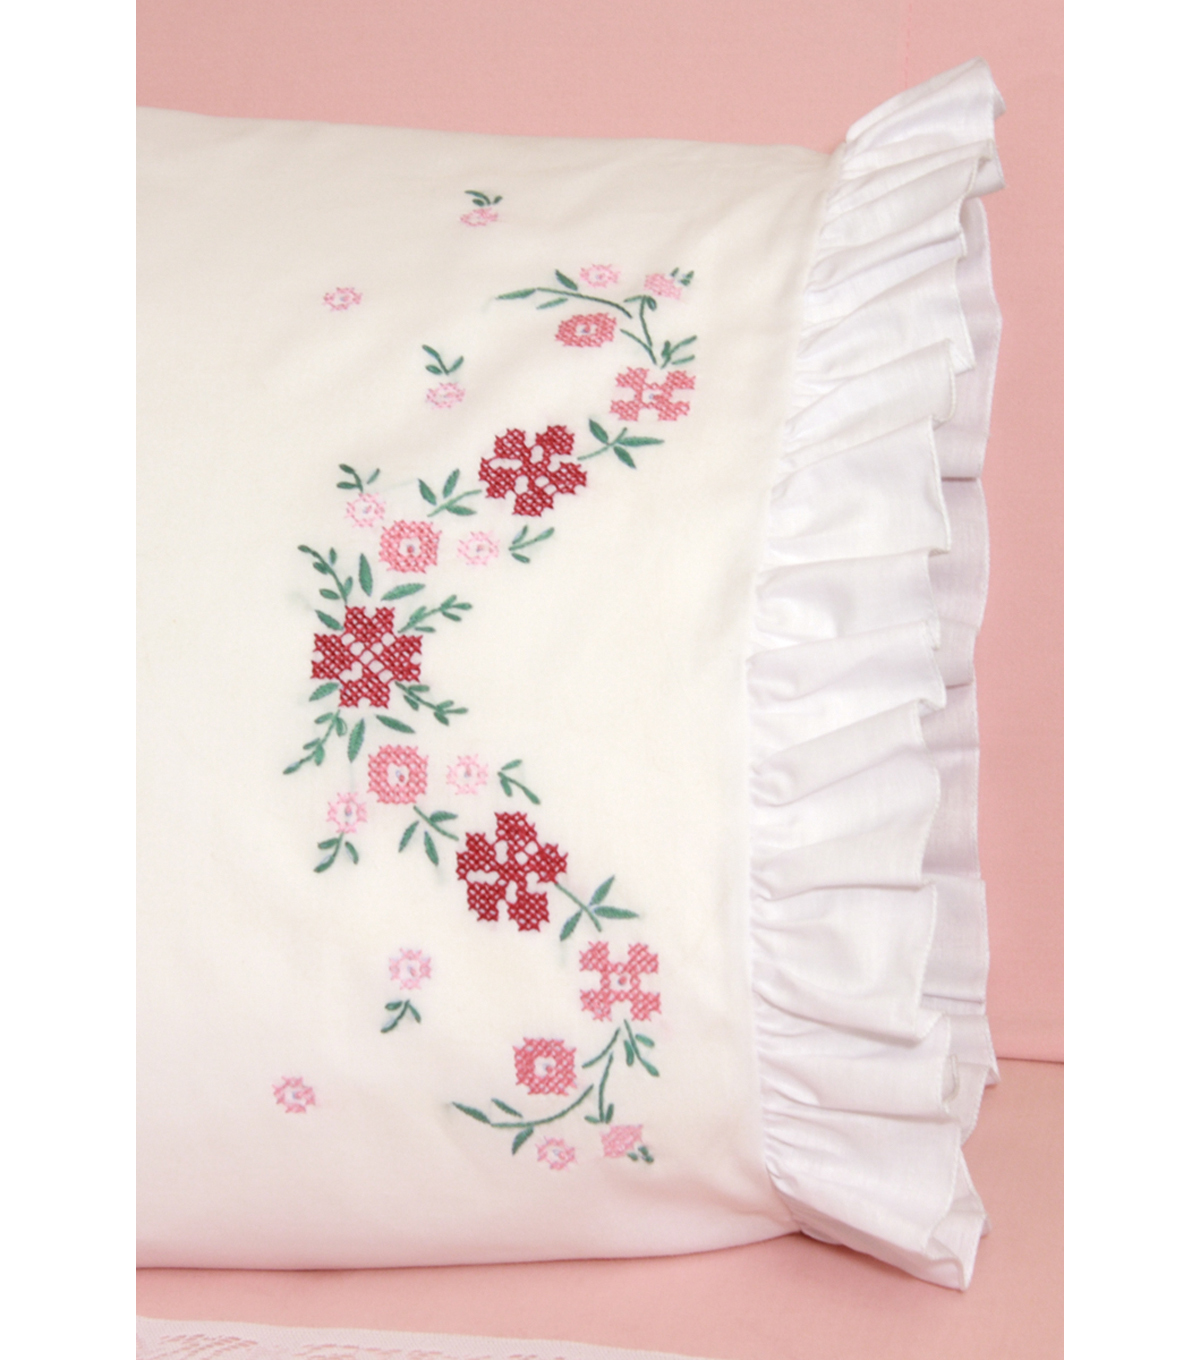 Fairway Stamped Cross Stitch Lace Edge Pillowcase Flower